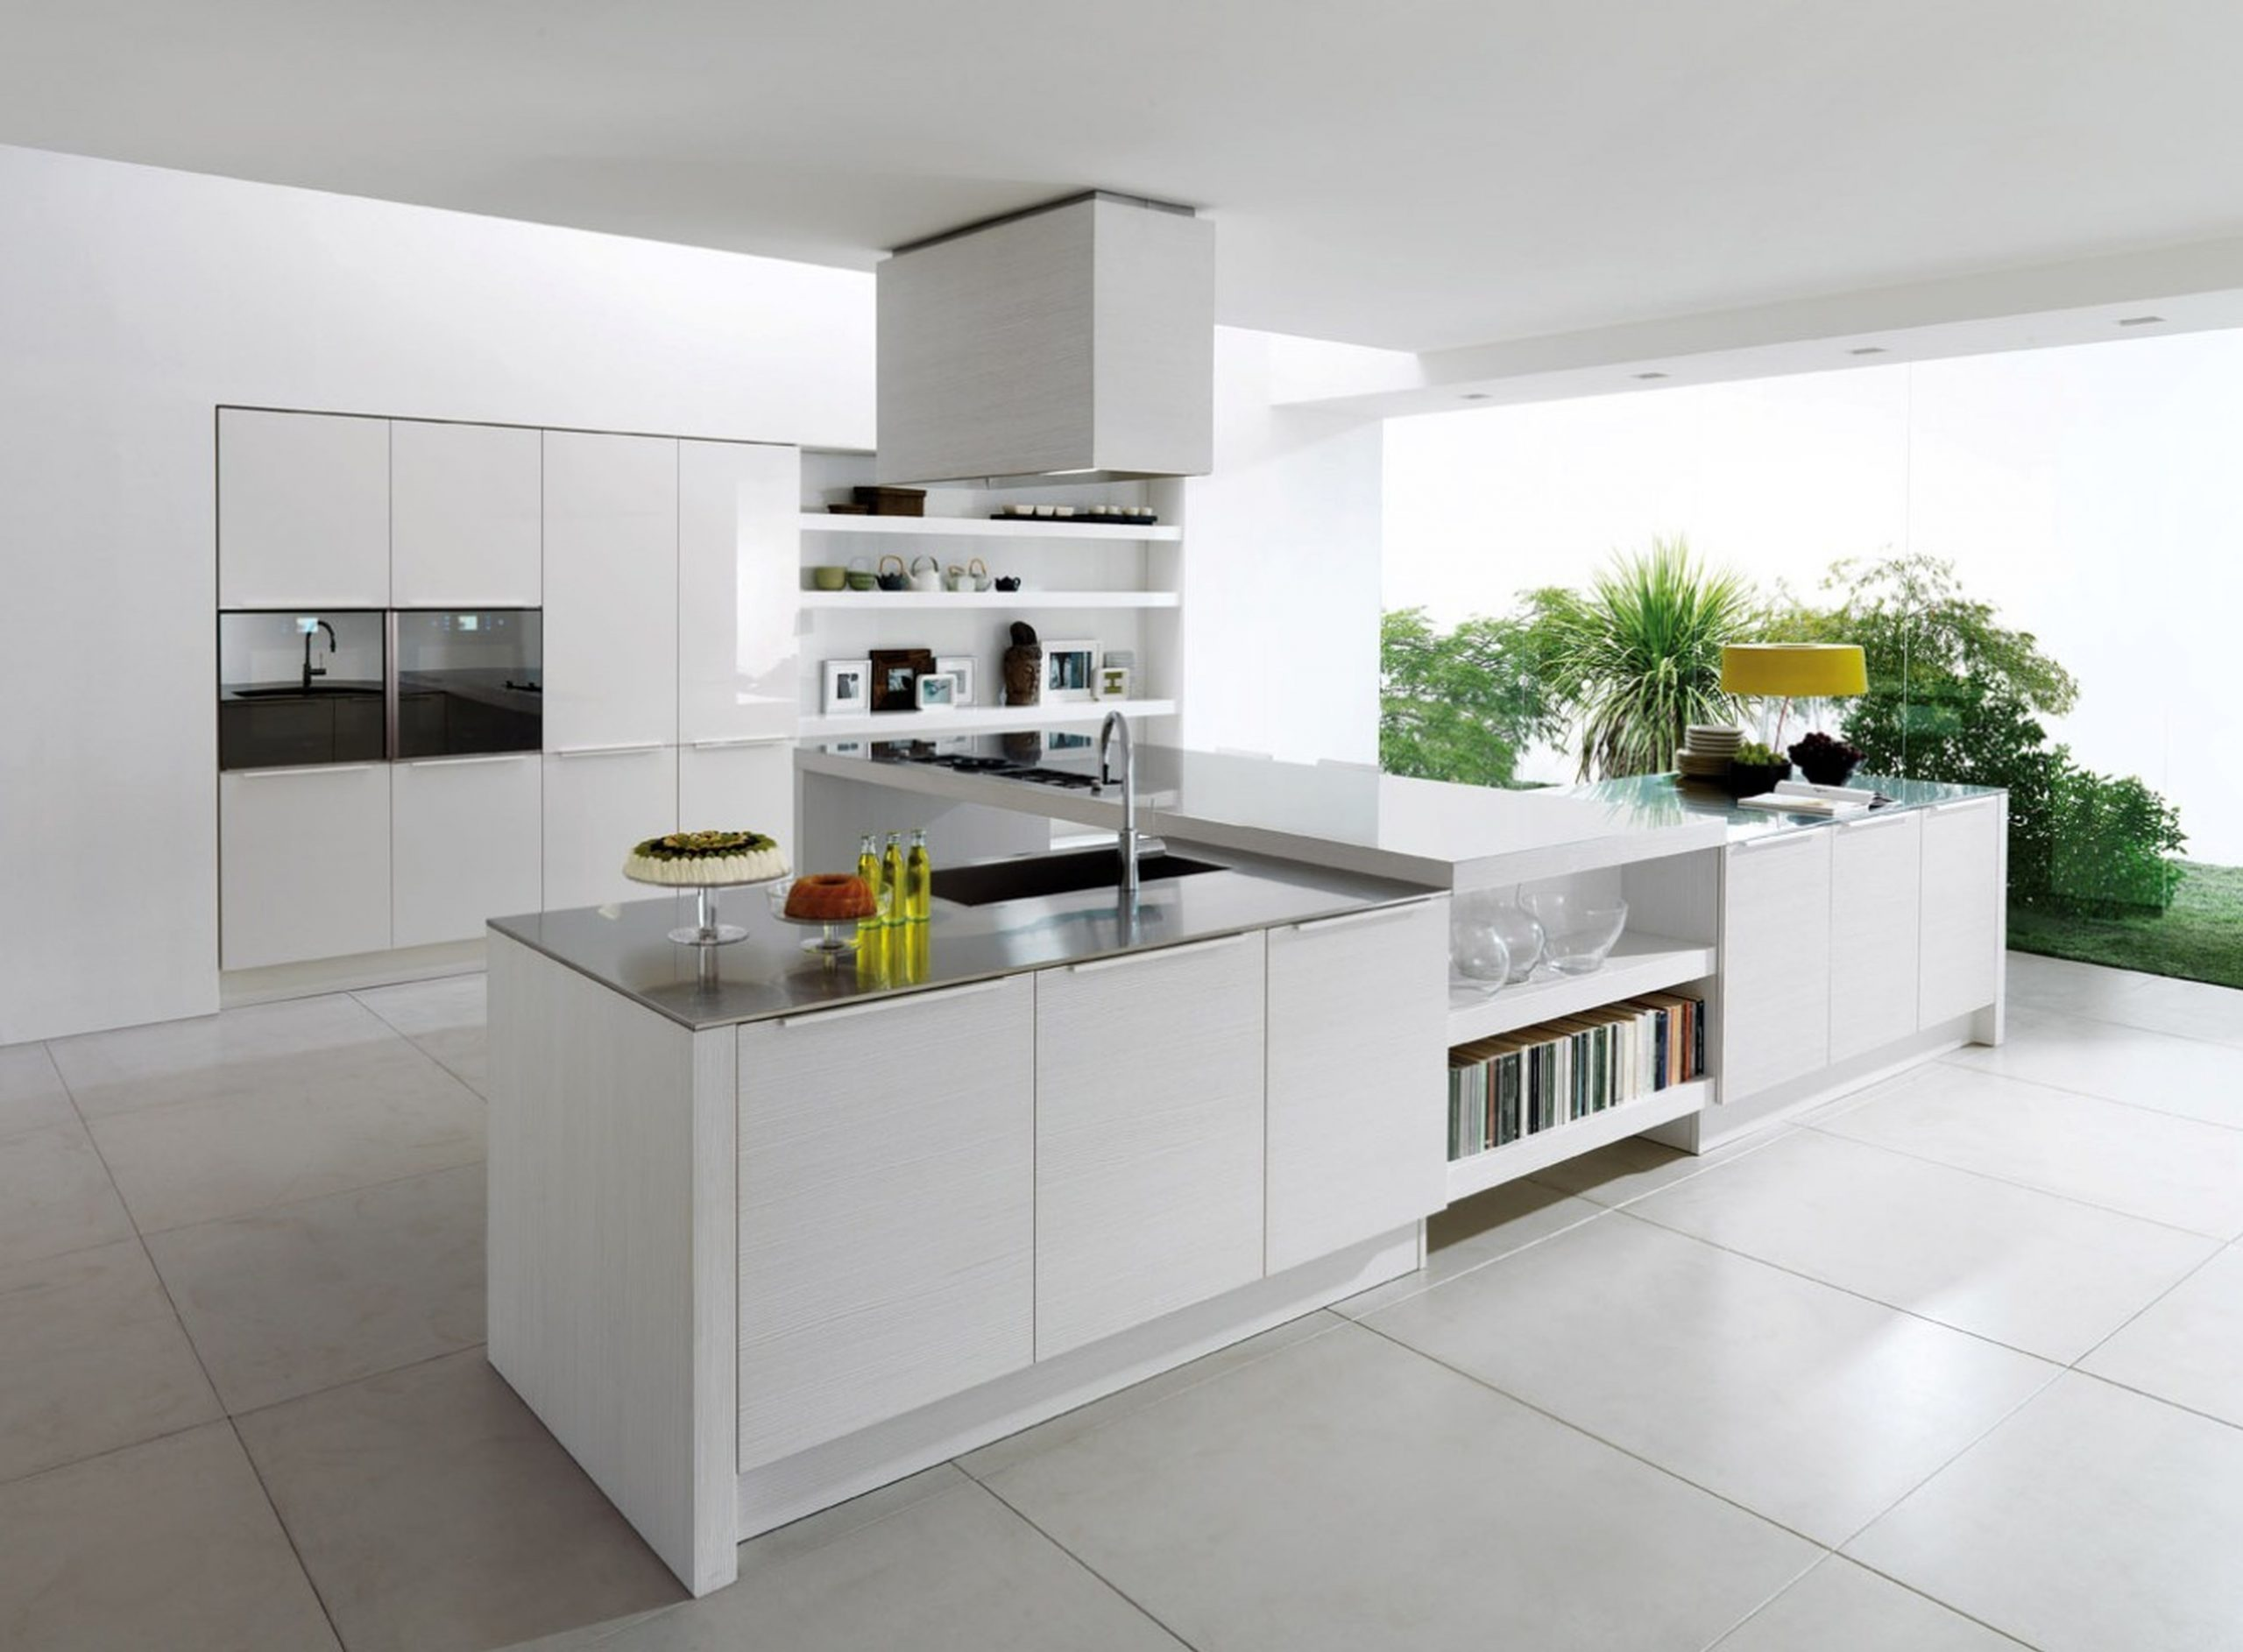 best-of-modern-kitchen-cabinet-design-photos-2590-incridible-interior-pictures_design-kitchen-modern_interior-design_interior-design-portfolio-websites-office-school-nyc-ideas-top-schools-tumblr-s